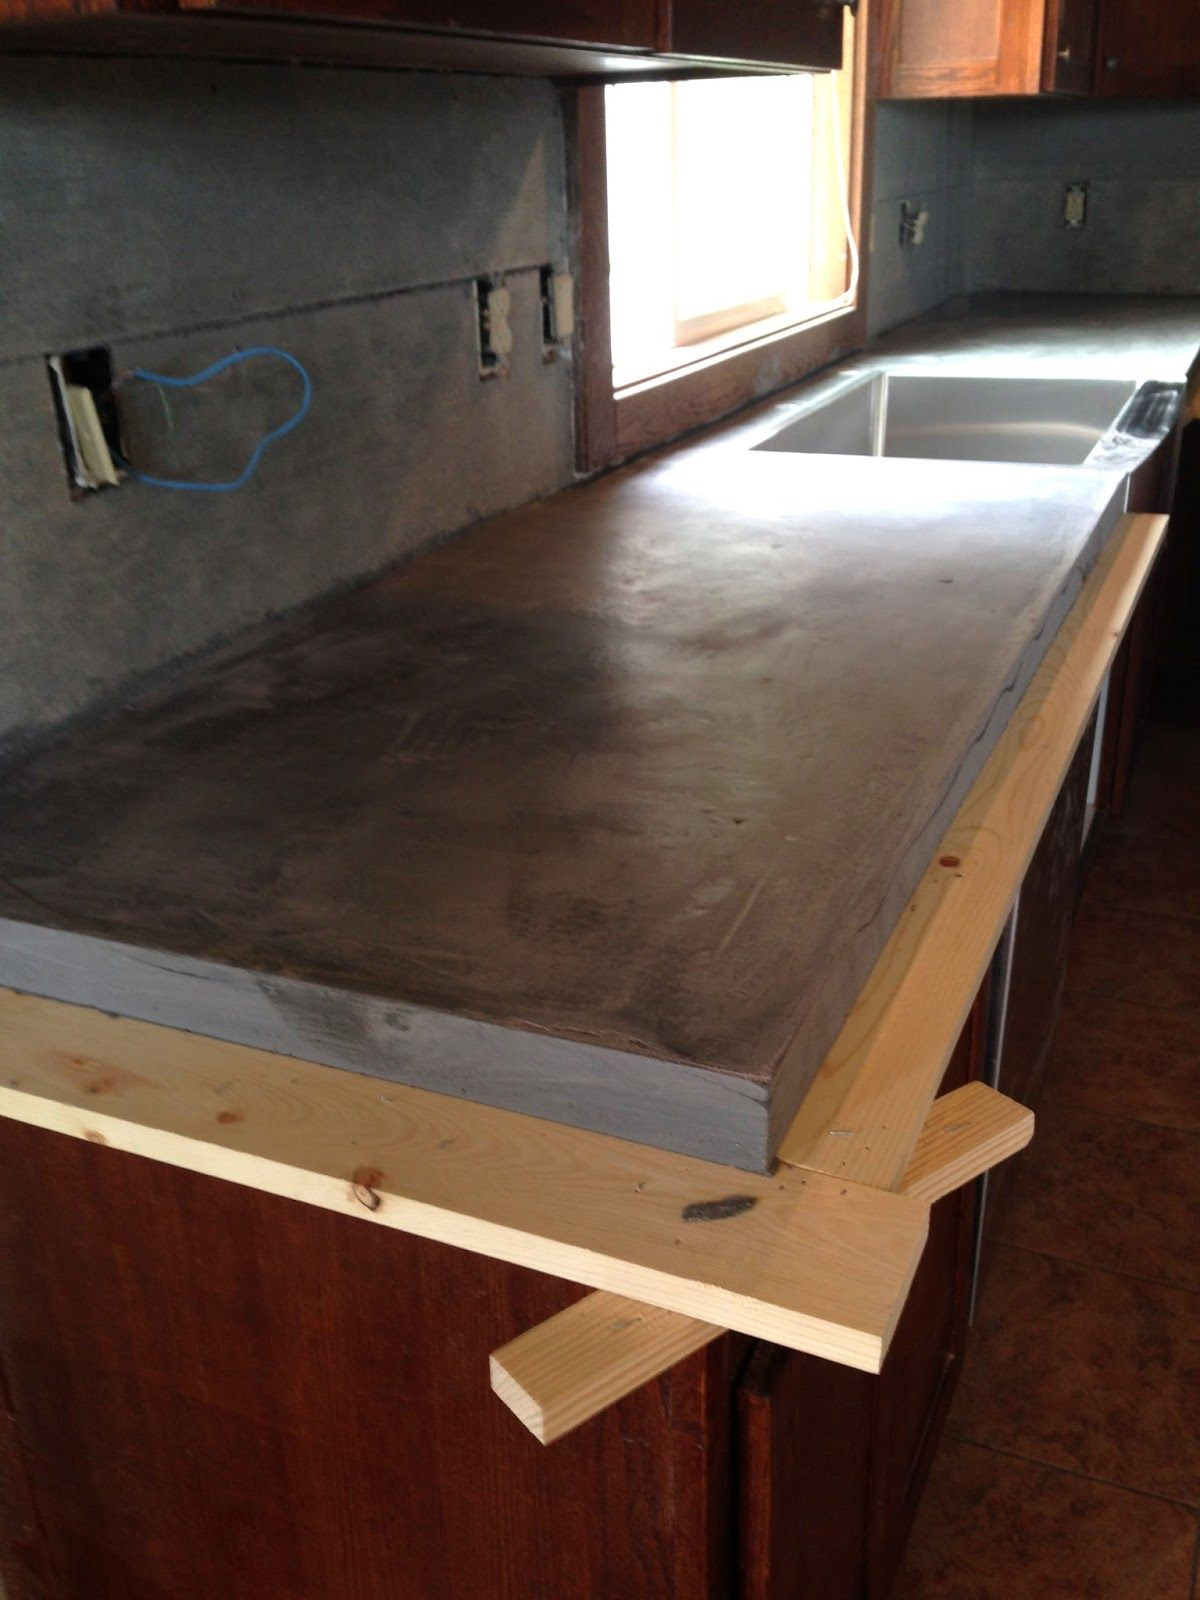 diy concrete counters poured over laminate | diy concrete and concrete